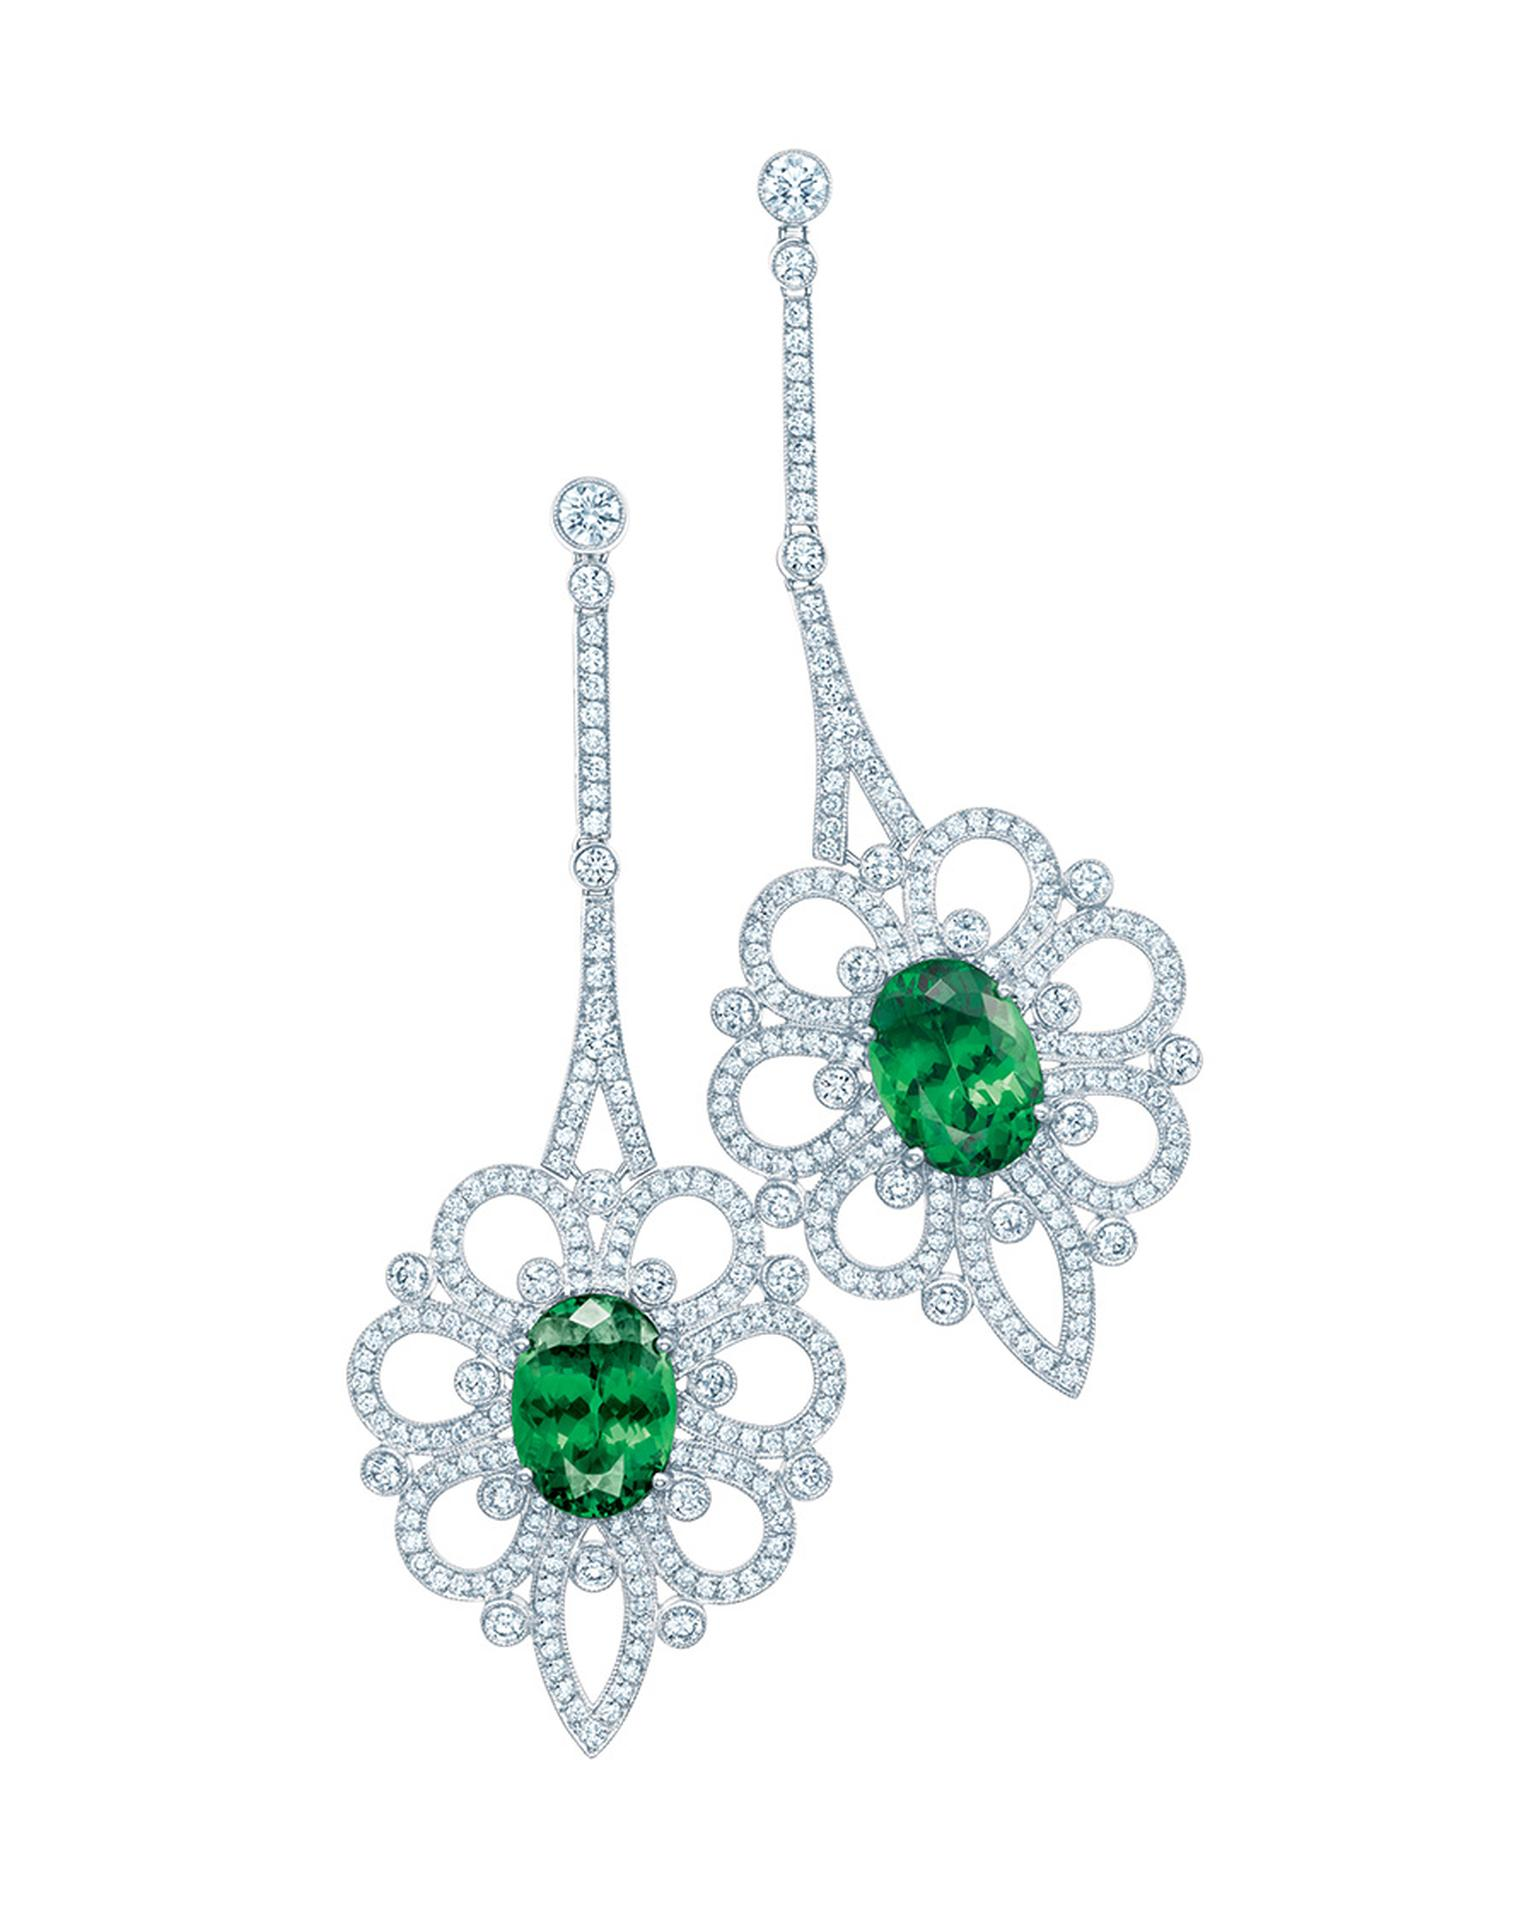 Tiffany-tsavorite-earrings